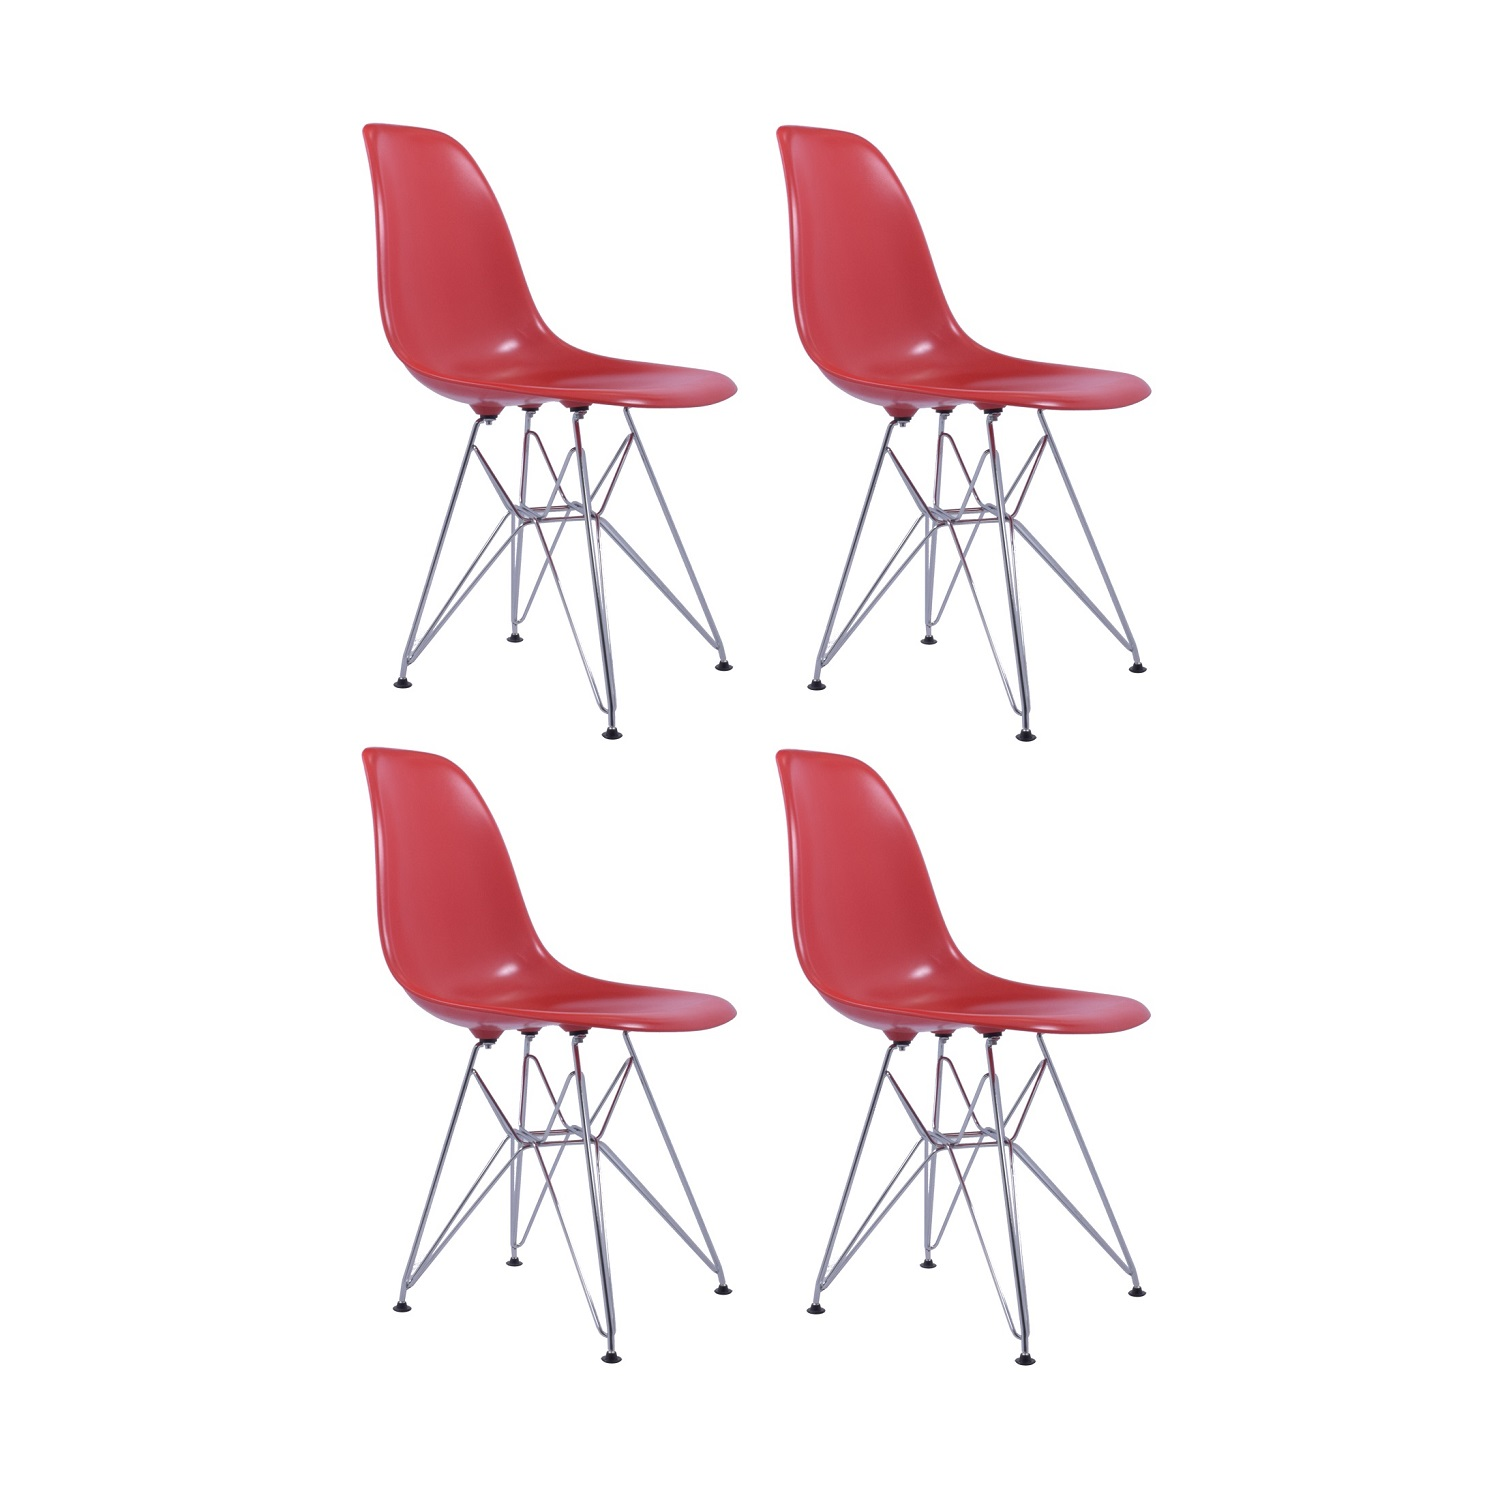 Eames Replica Replica Eames Dsr Dining Chair Set Of 4